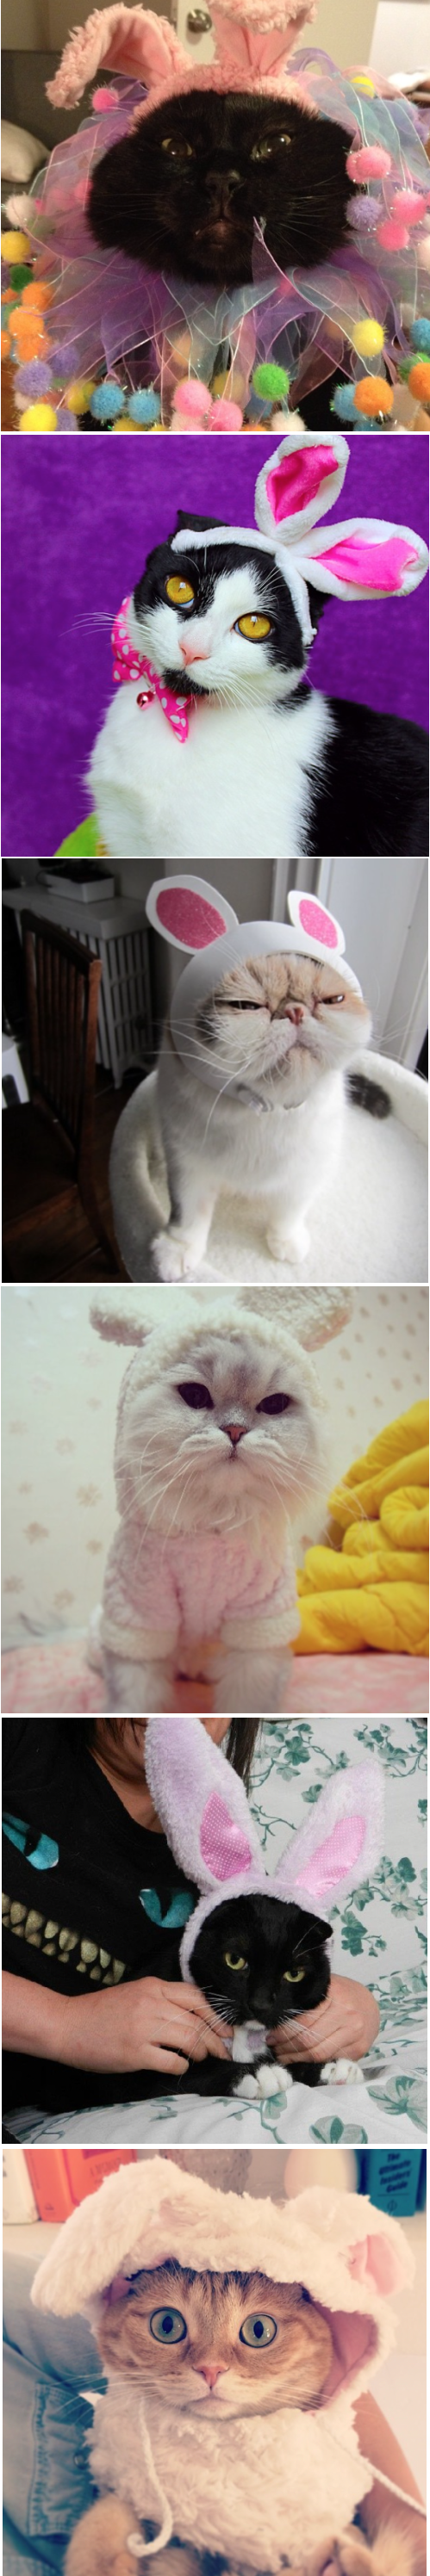 Five cats unhappy about Easter.